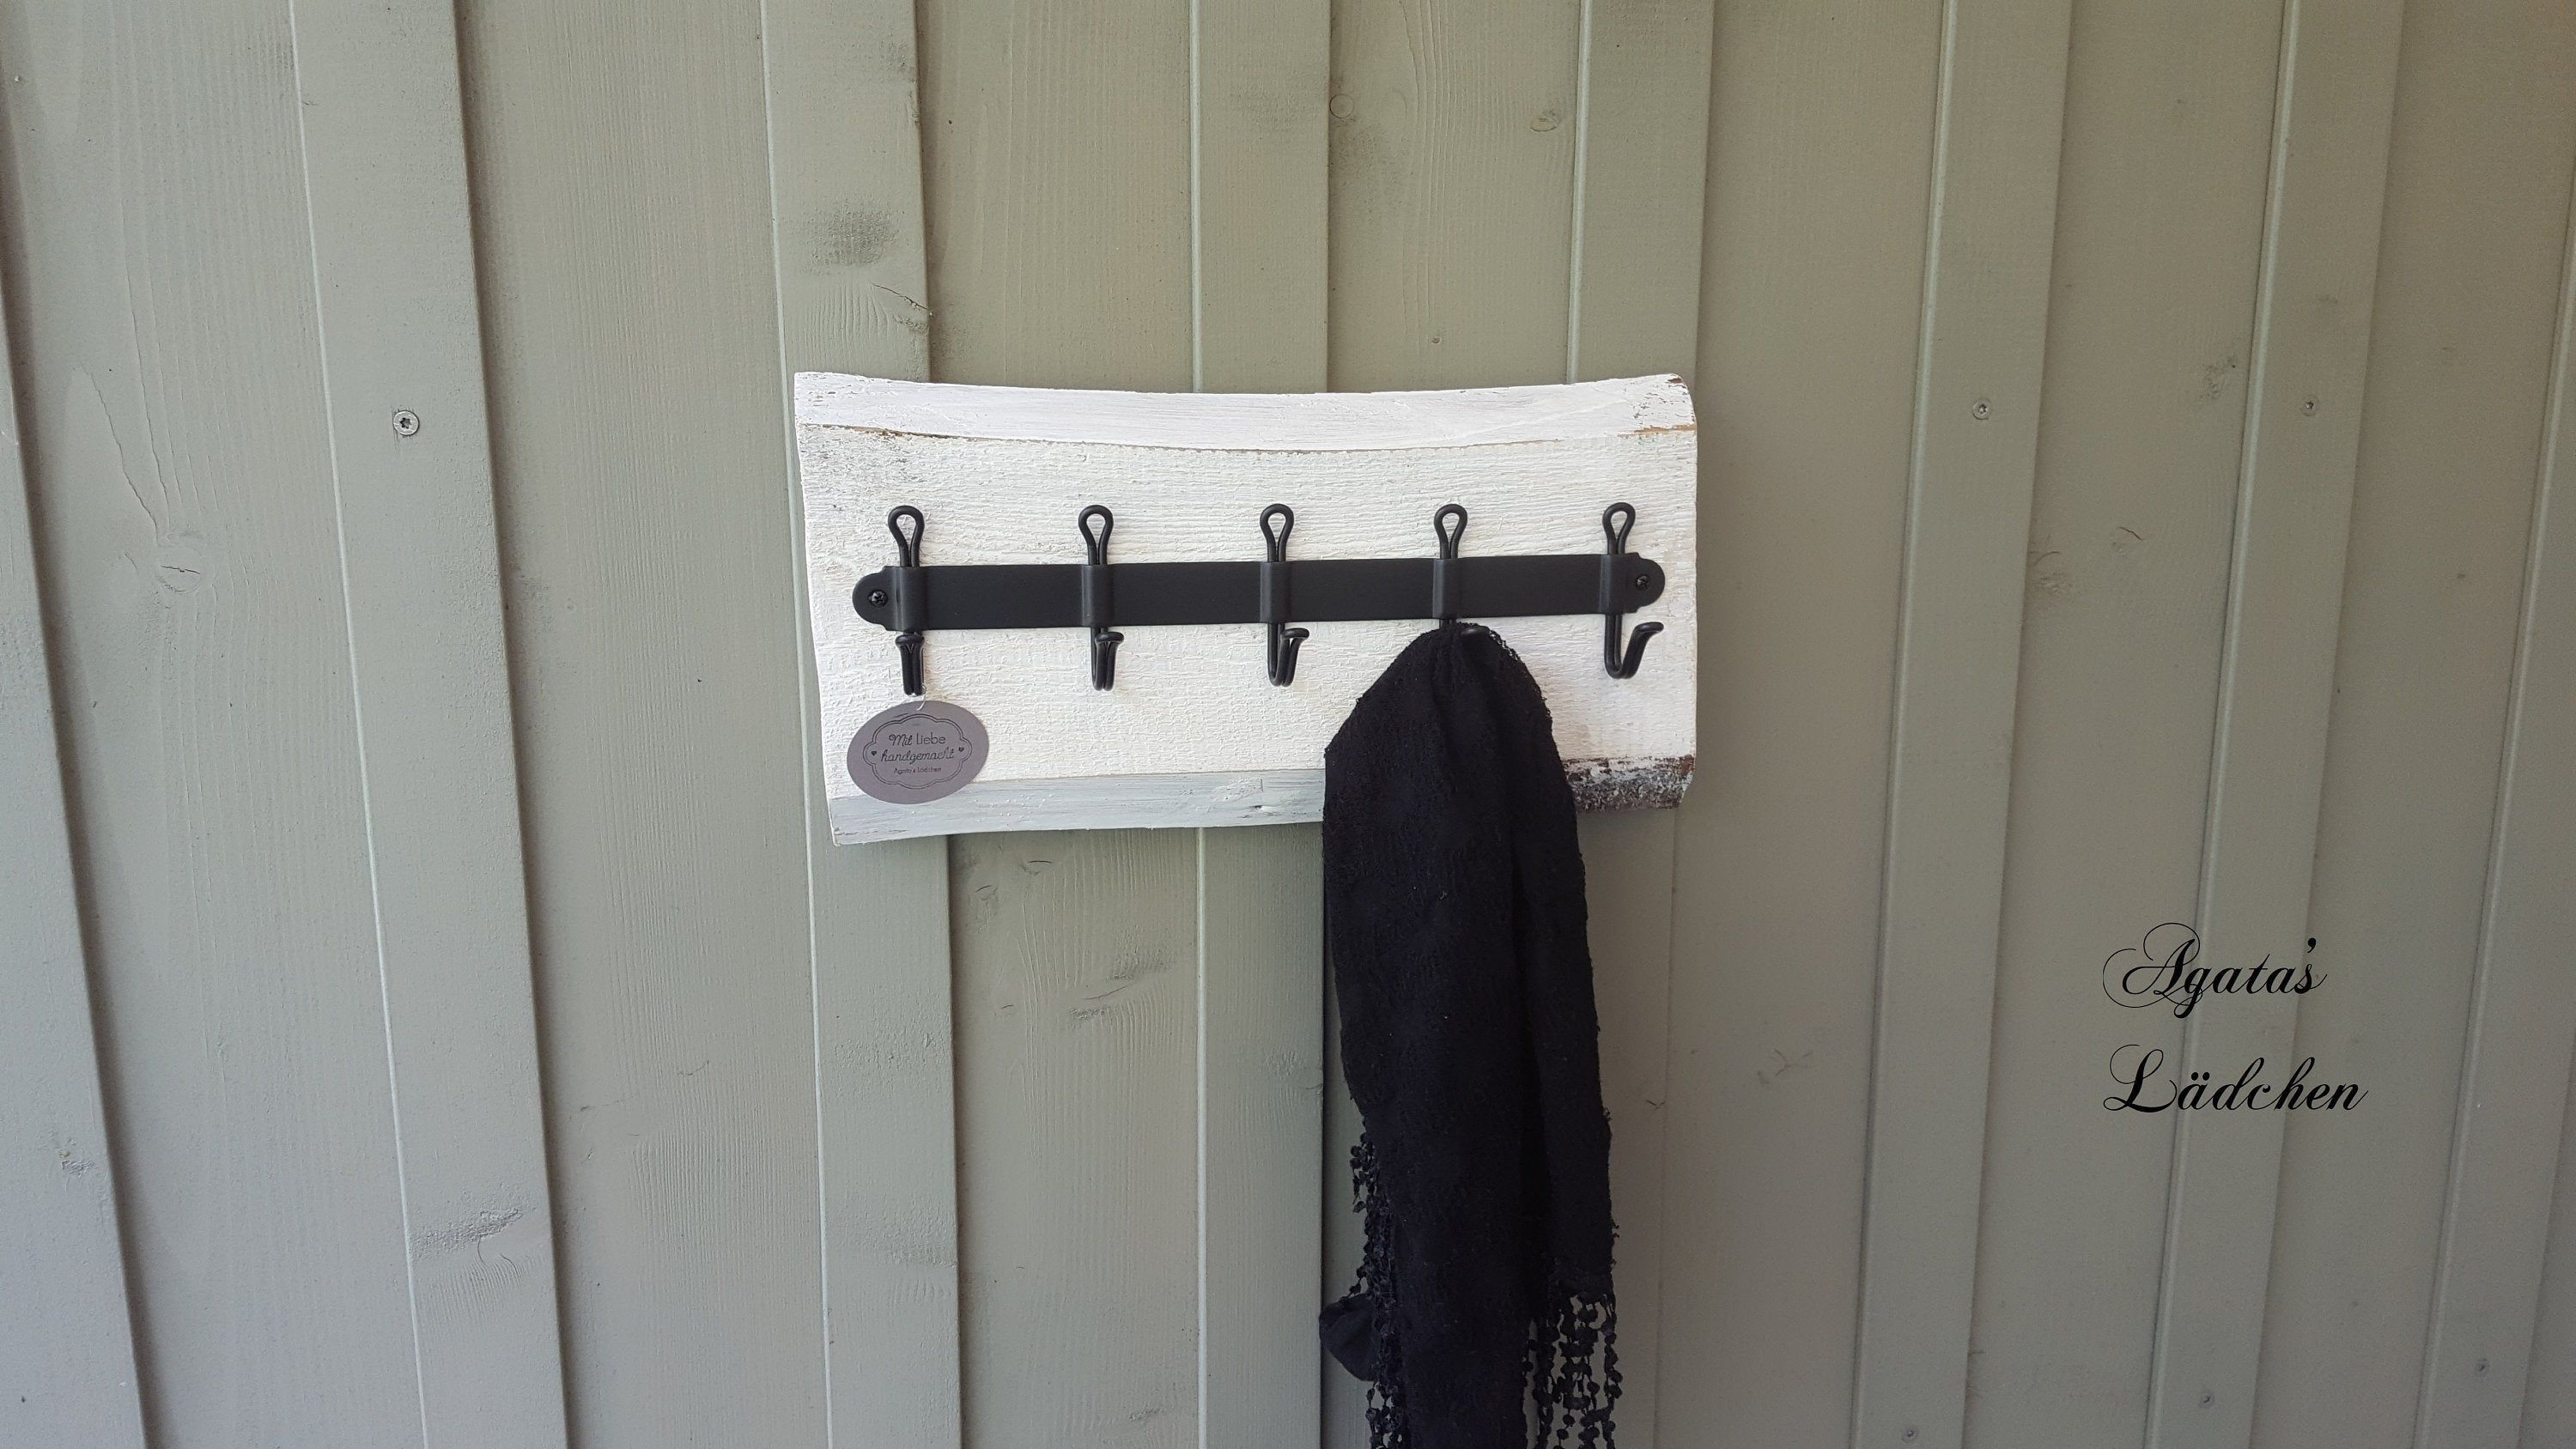 Hakenbar Wall Wardrobe In Shabby Chic Style One Of A Kind Towel